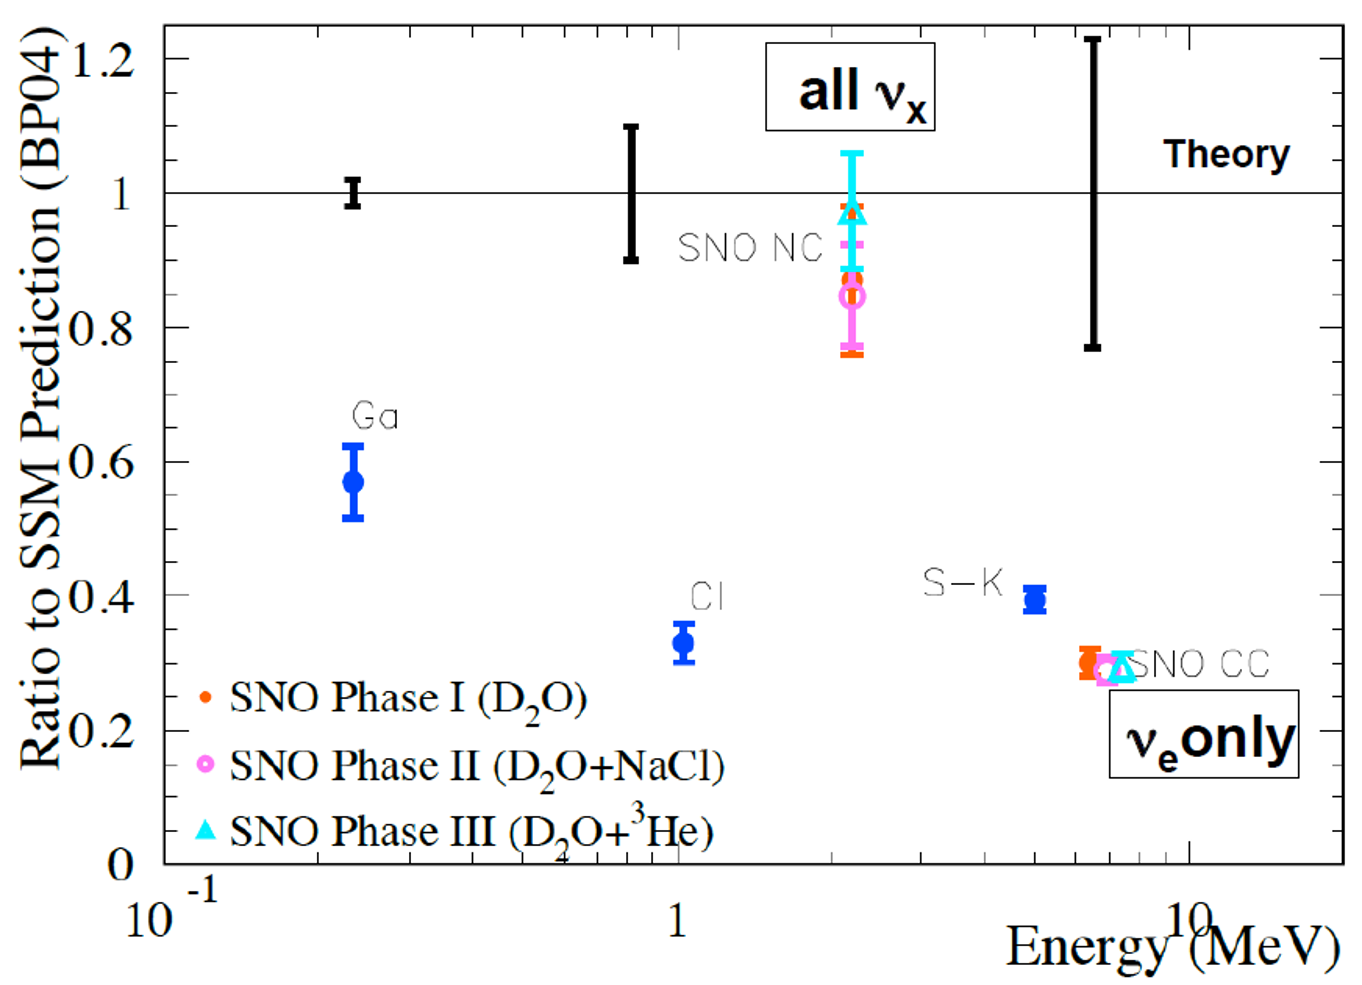 SNO and other solar neutrino results